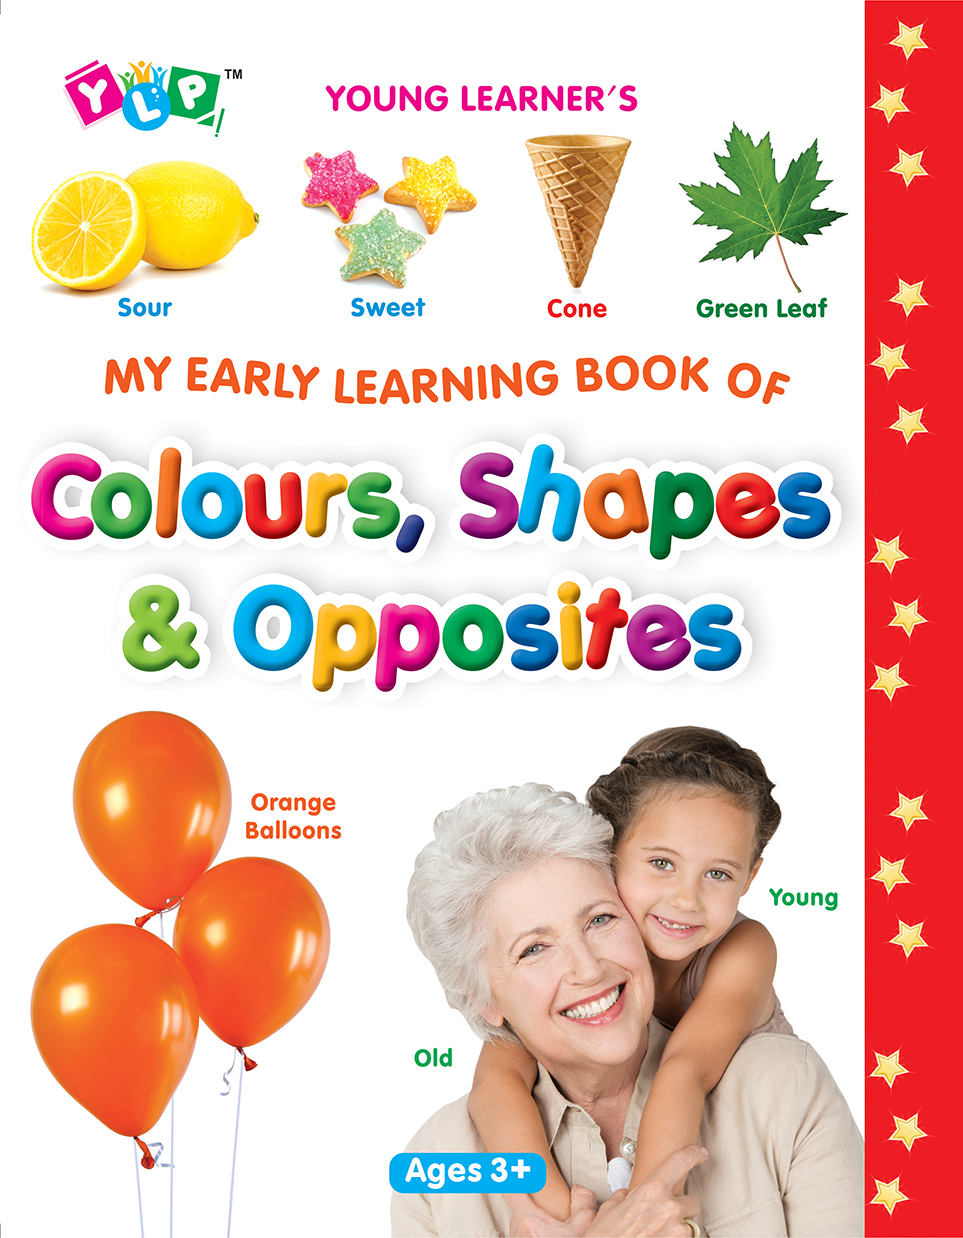 My Early Learning Book of Shapes, Colours & Opposites (Full Laminated)